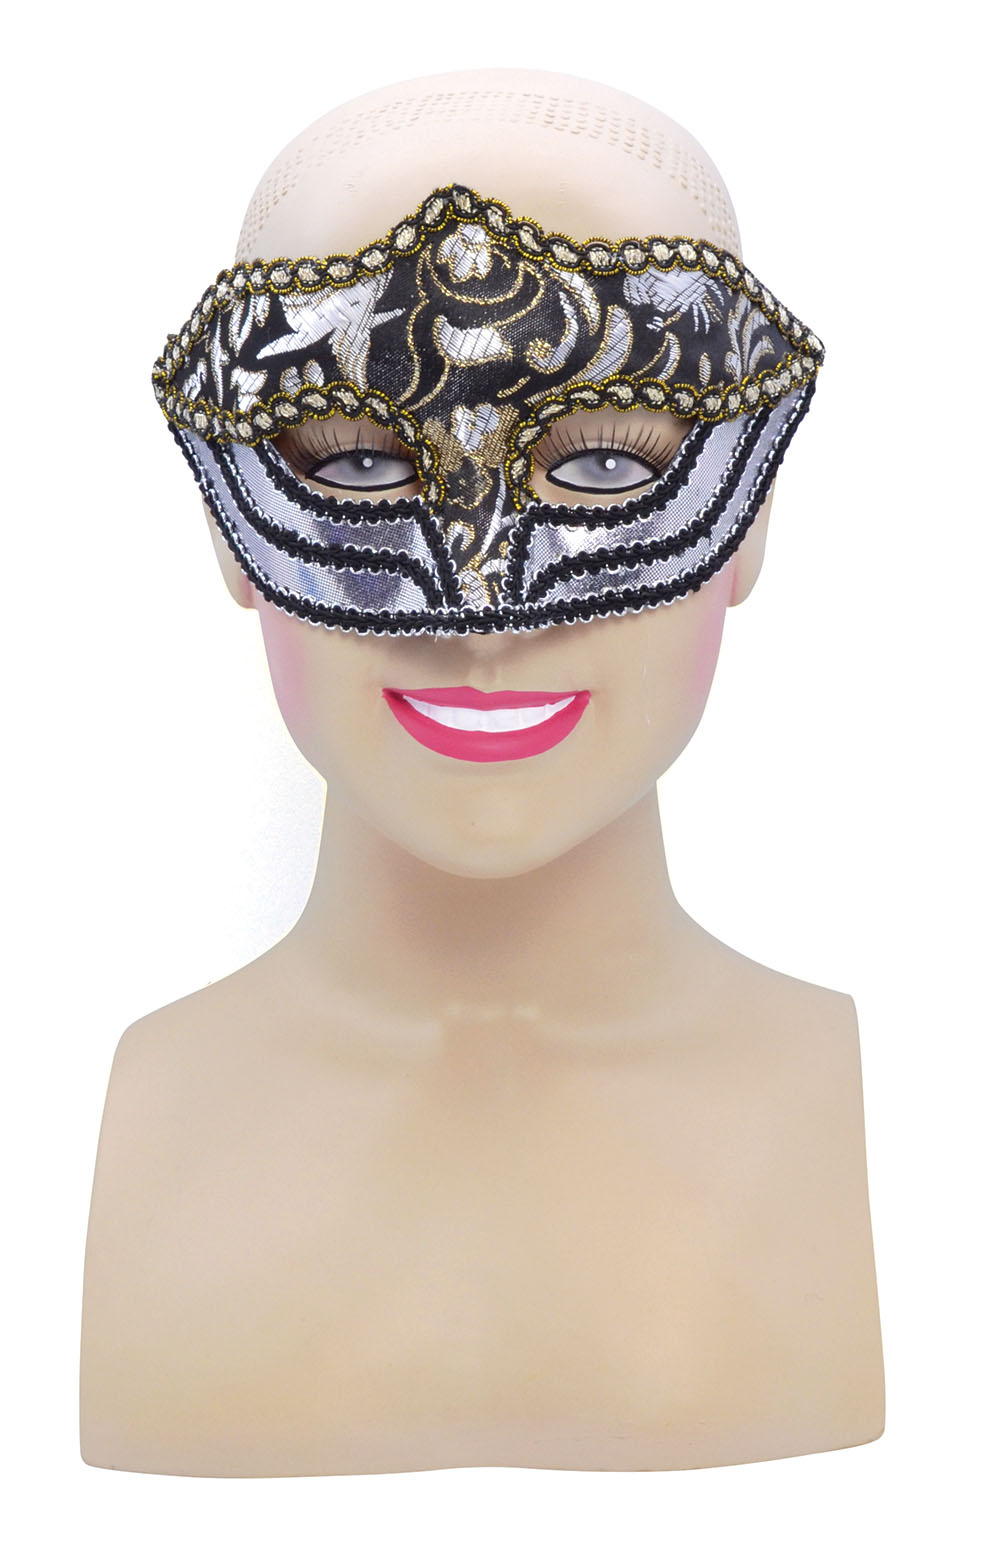 Silver Gold Patterned Face Mask Masquerade Halloween Fancy Dress Accessory